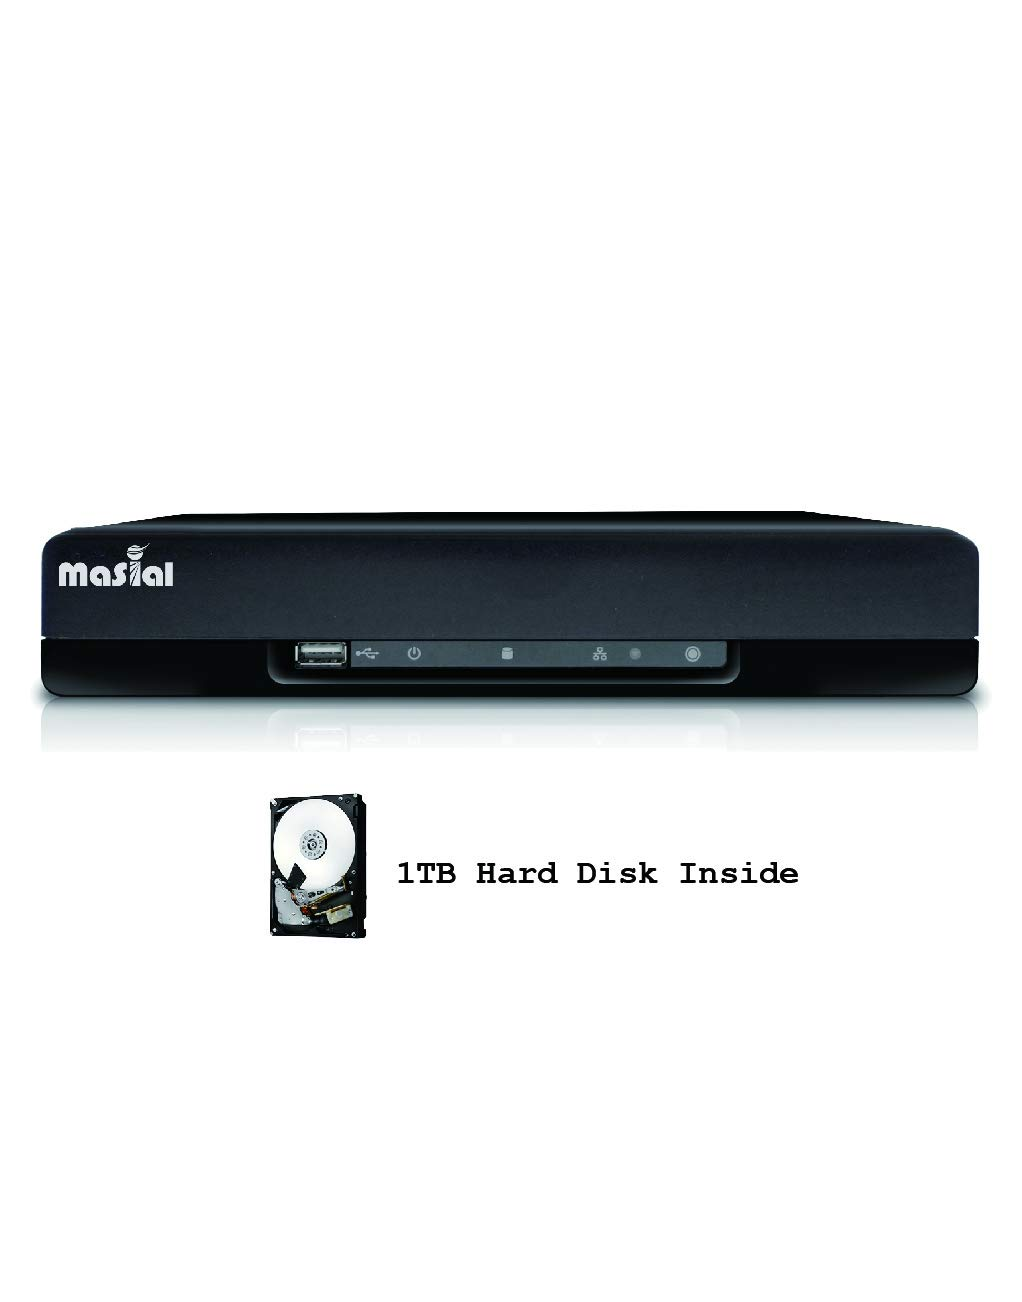 Masial 8 Channels HD 1080P Security DVR CCTV Motion Detection Digital Recorder, Supports HDCVI/TVI/AHD/960H/IP, Remote Smartphone Access(1TB Hard Disk pre-Installed)